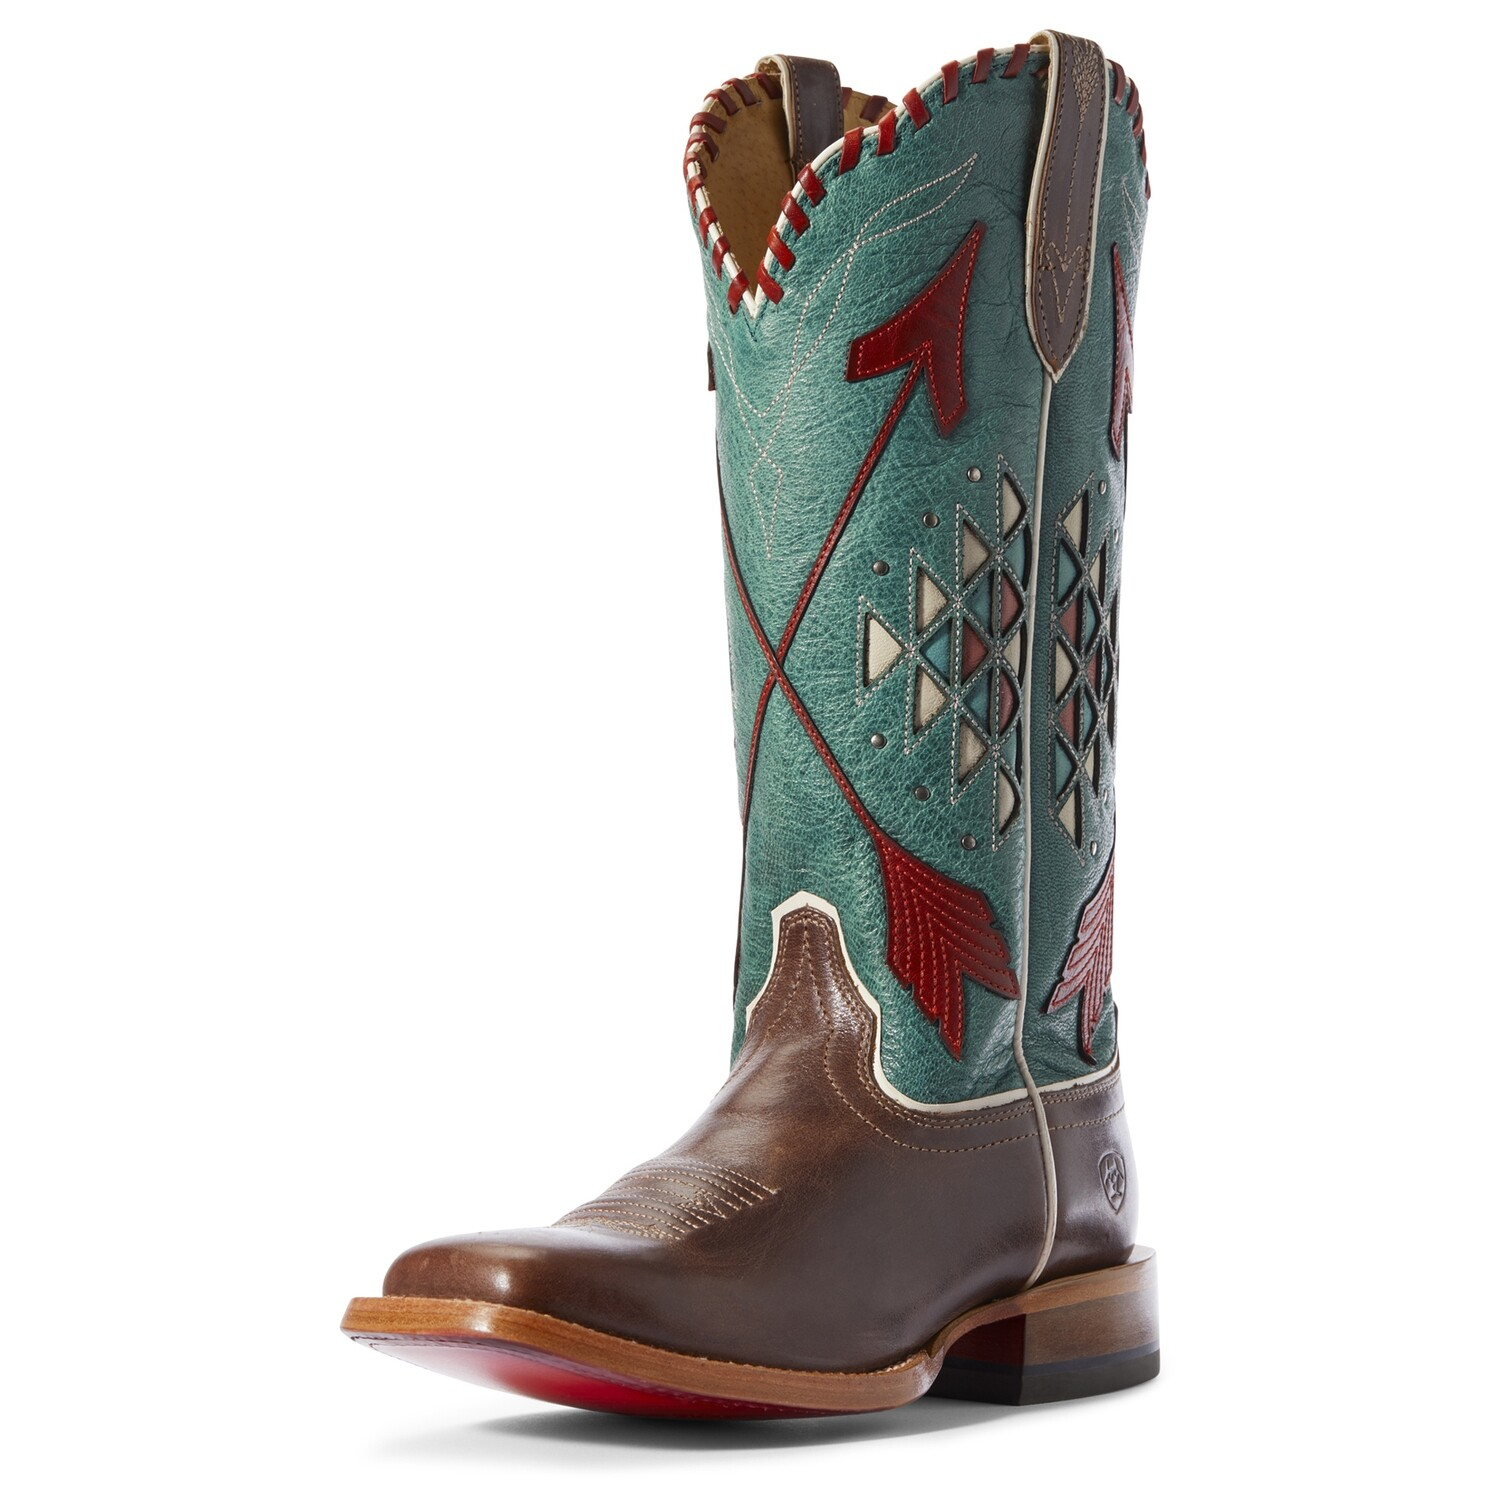 10031614 Ariat Arroyo Rustic Brown - ONLINE ONLY